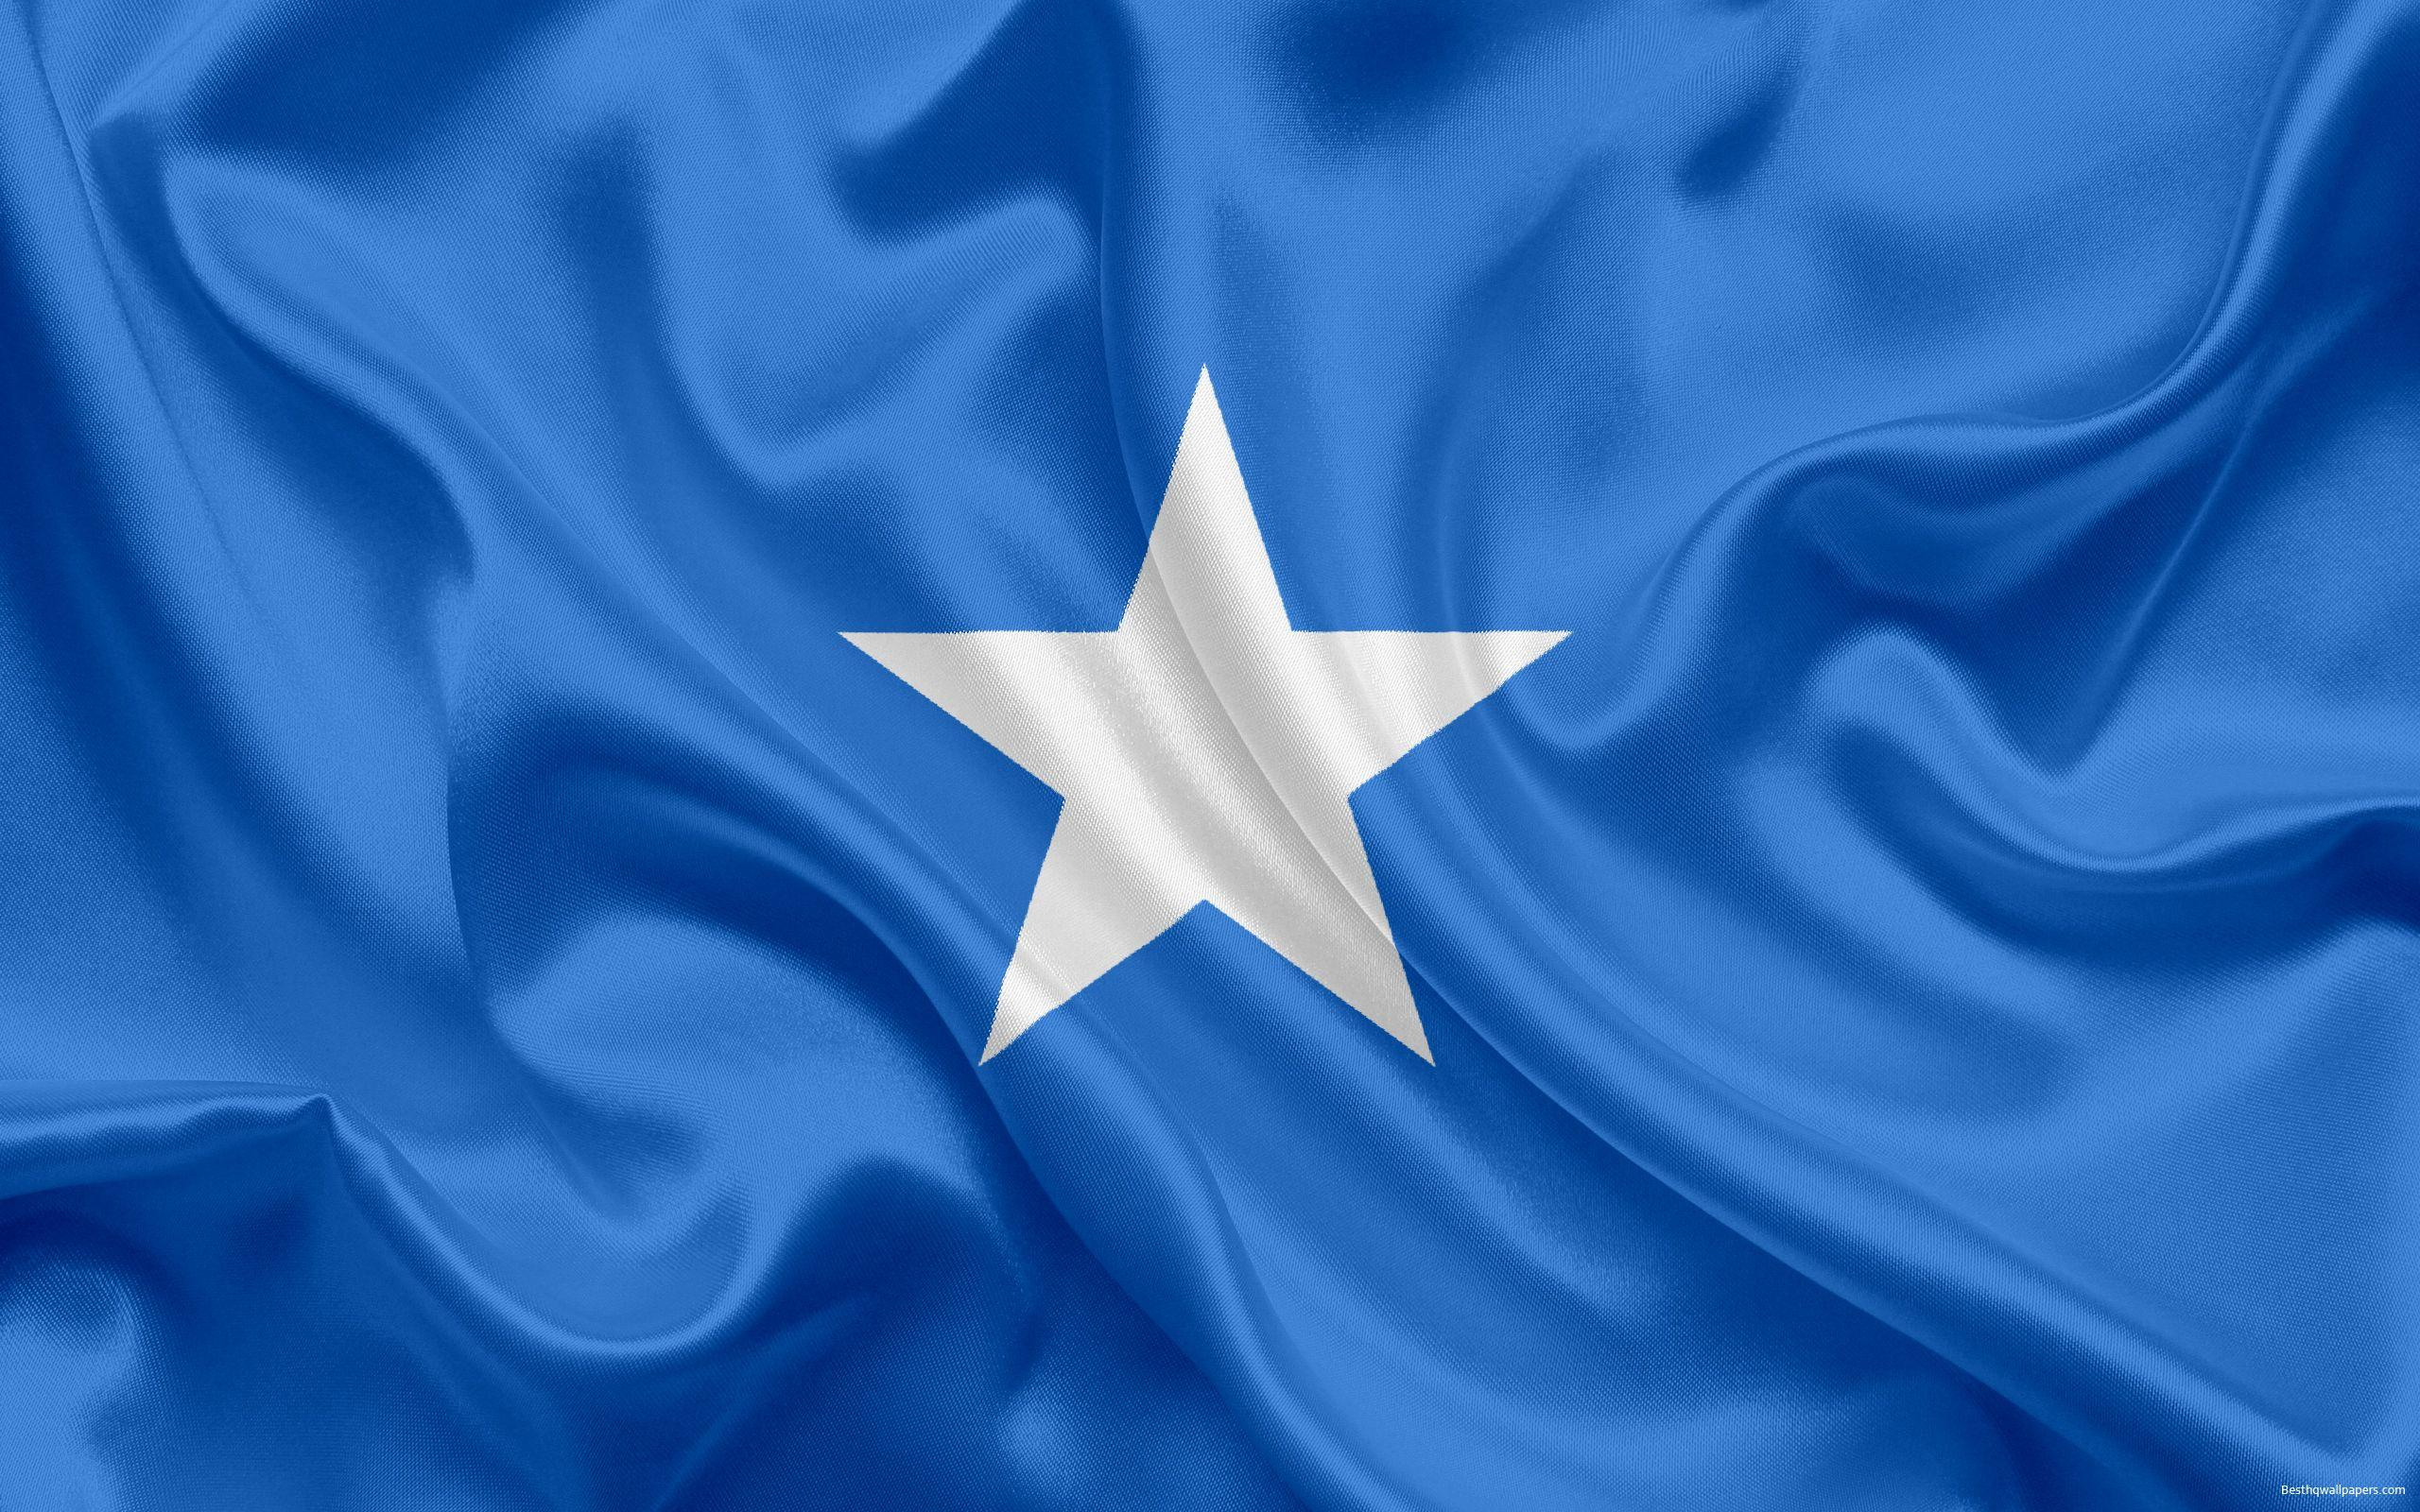 Download wallpapers Somali flag, national flag, Somalia, Africa